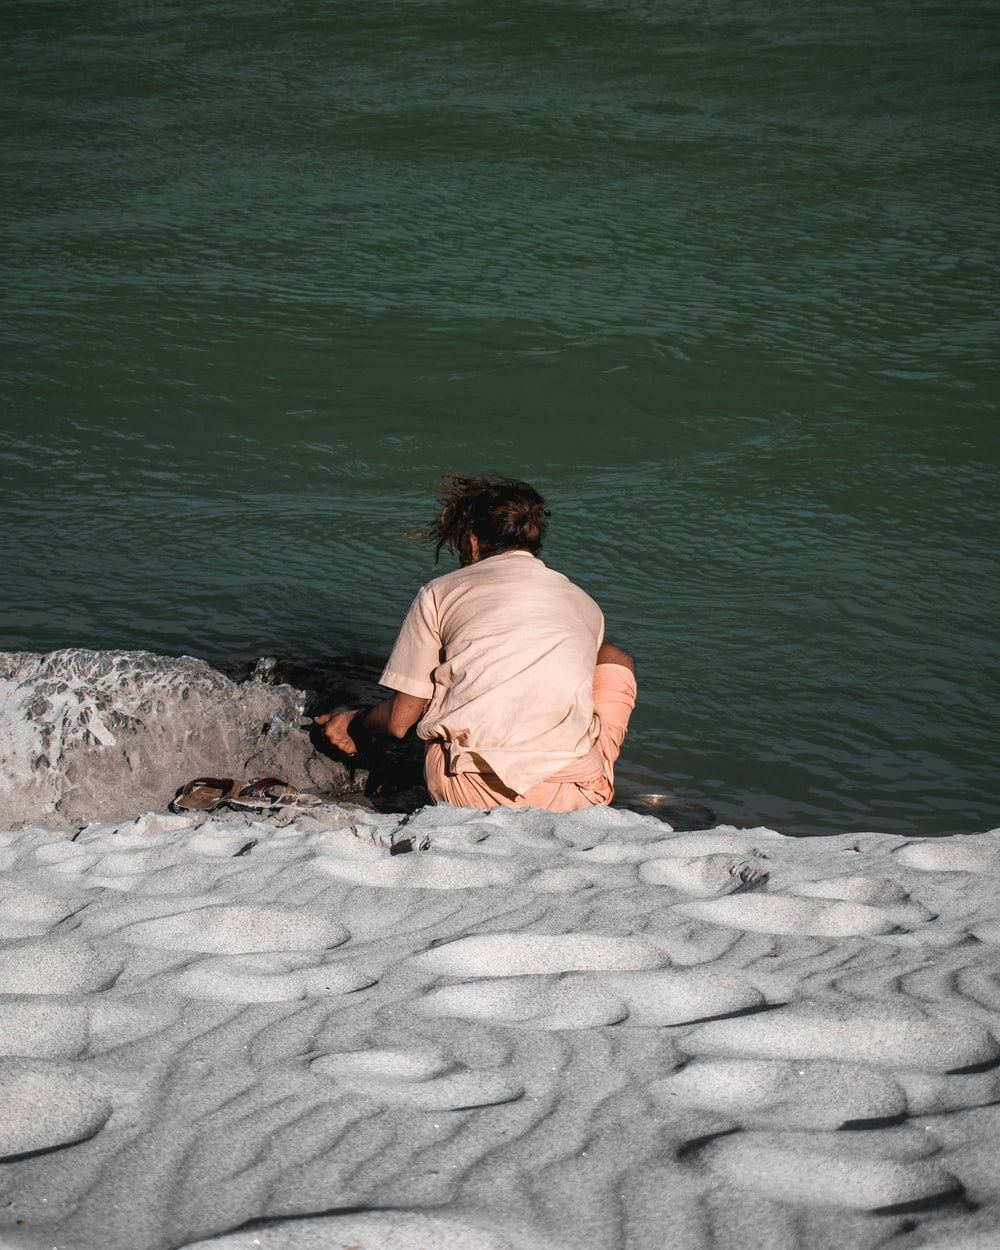 woman in brown shirt sitting on white sand near body of water during daytime